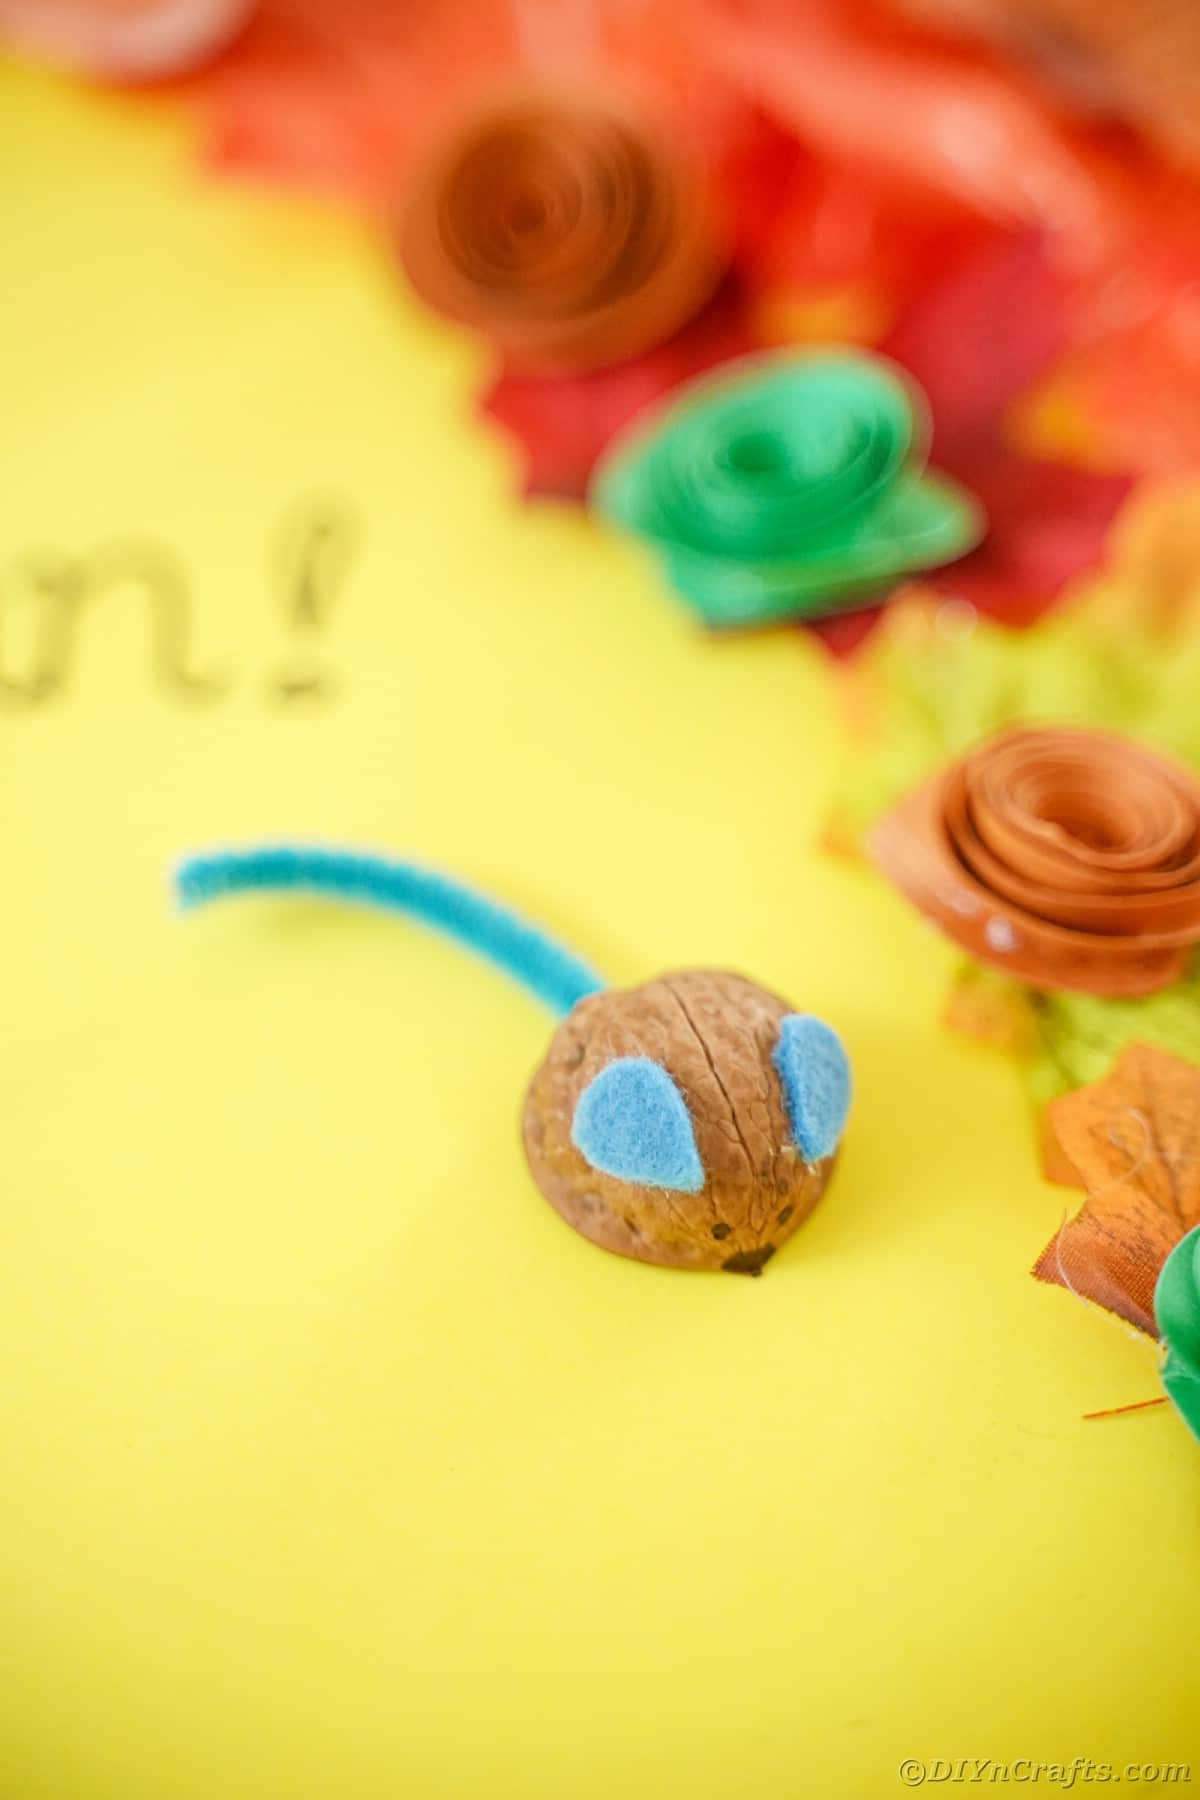 Walnut mouse on yellow paper next to paper flowers